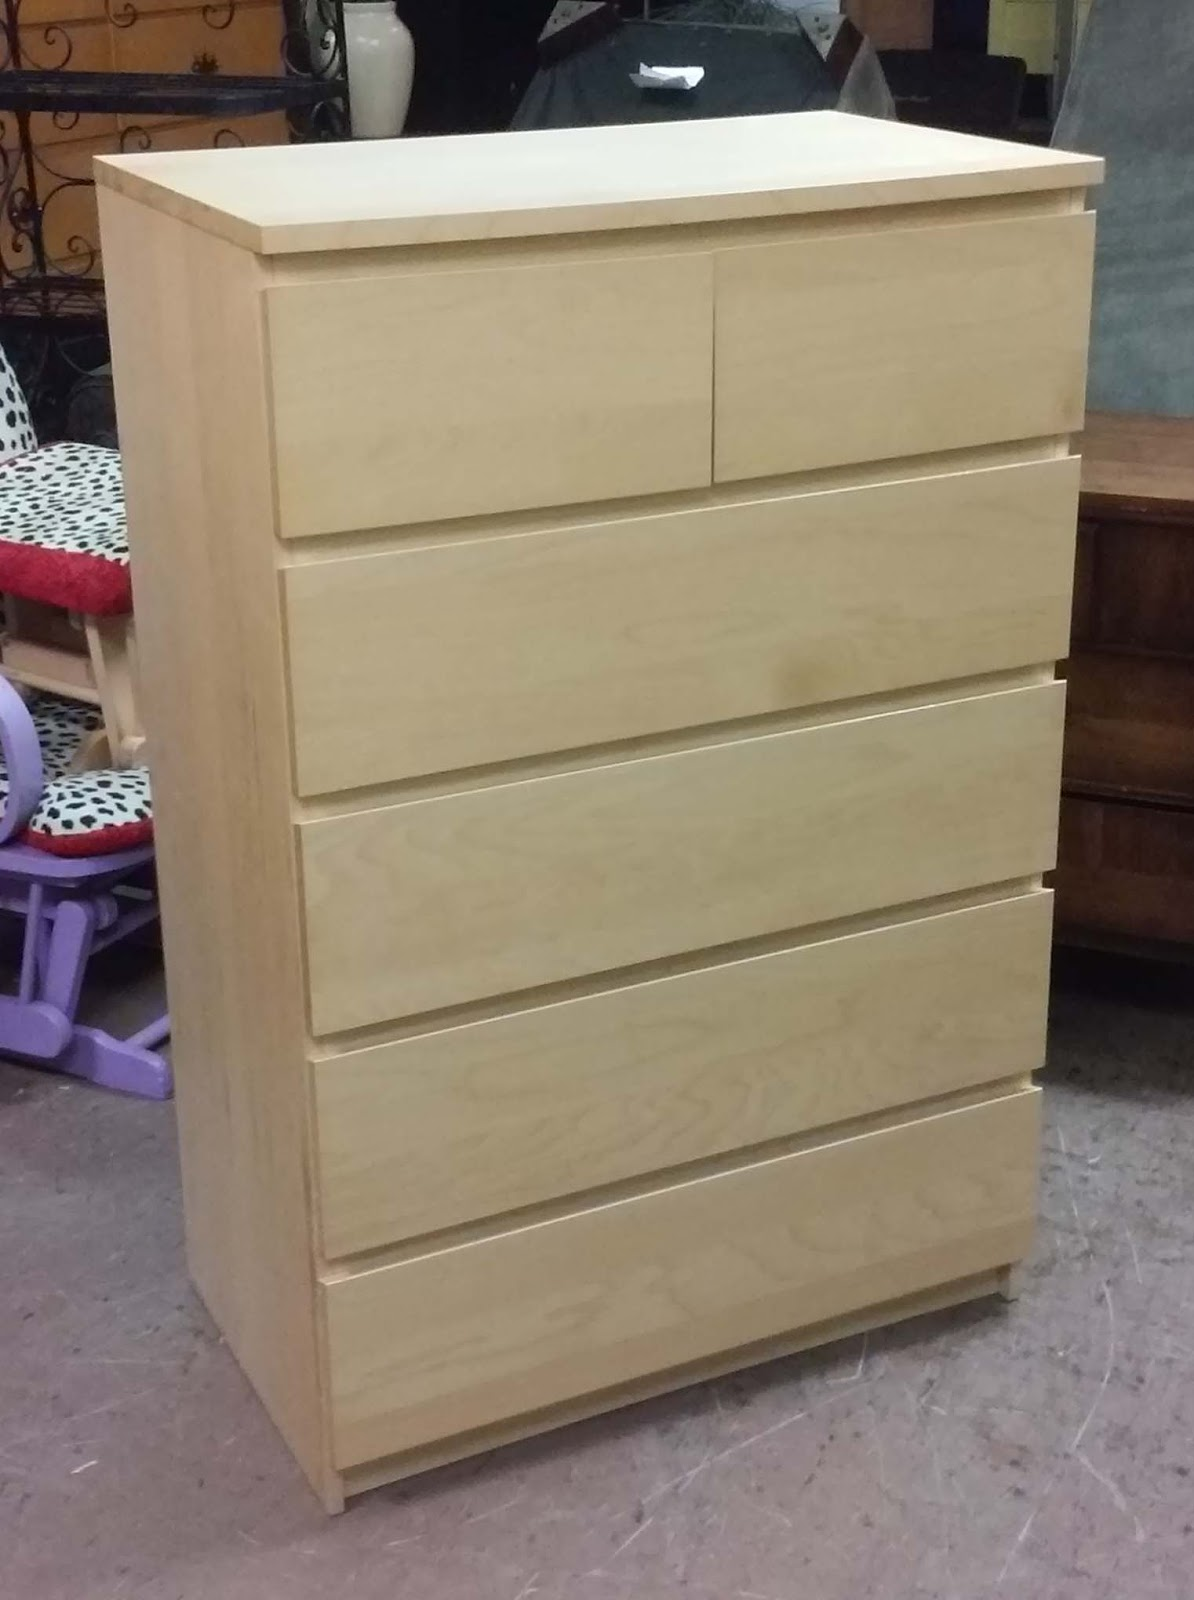 Uhuru Furniture Amp Collectibles Sold Ikea Blond Chest Of